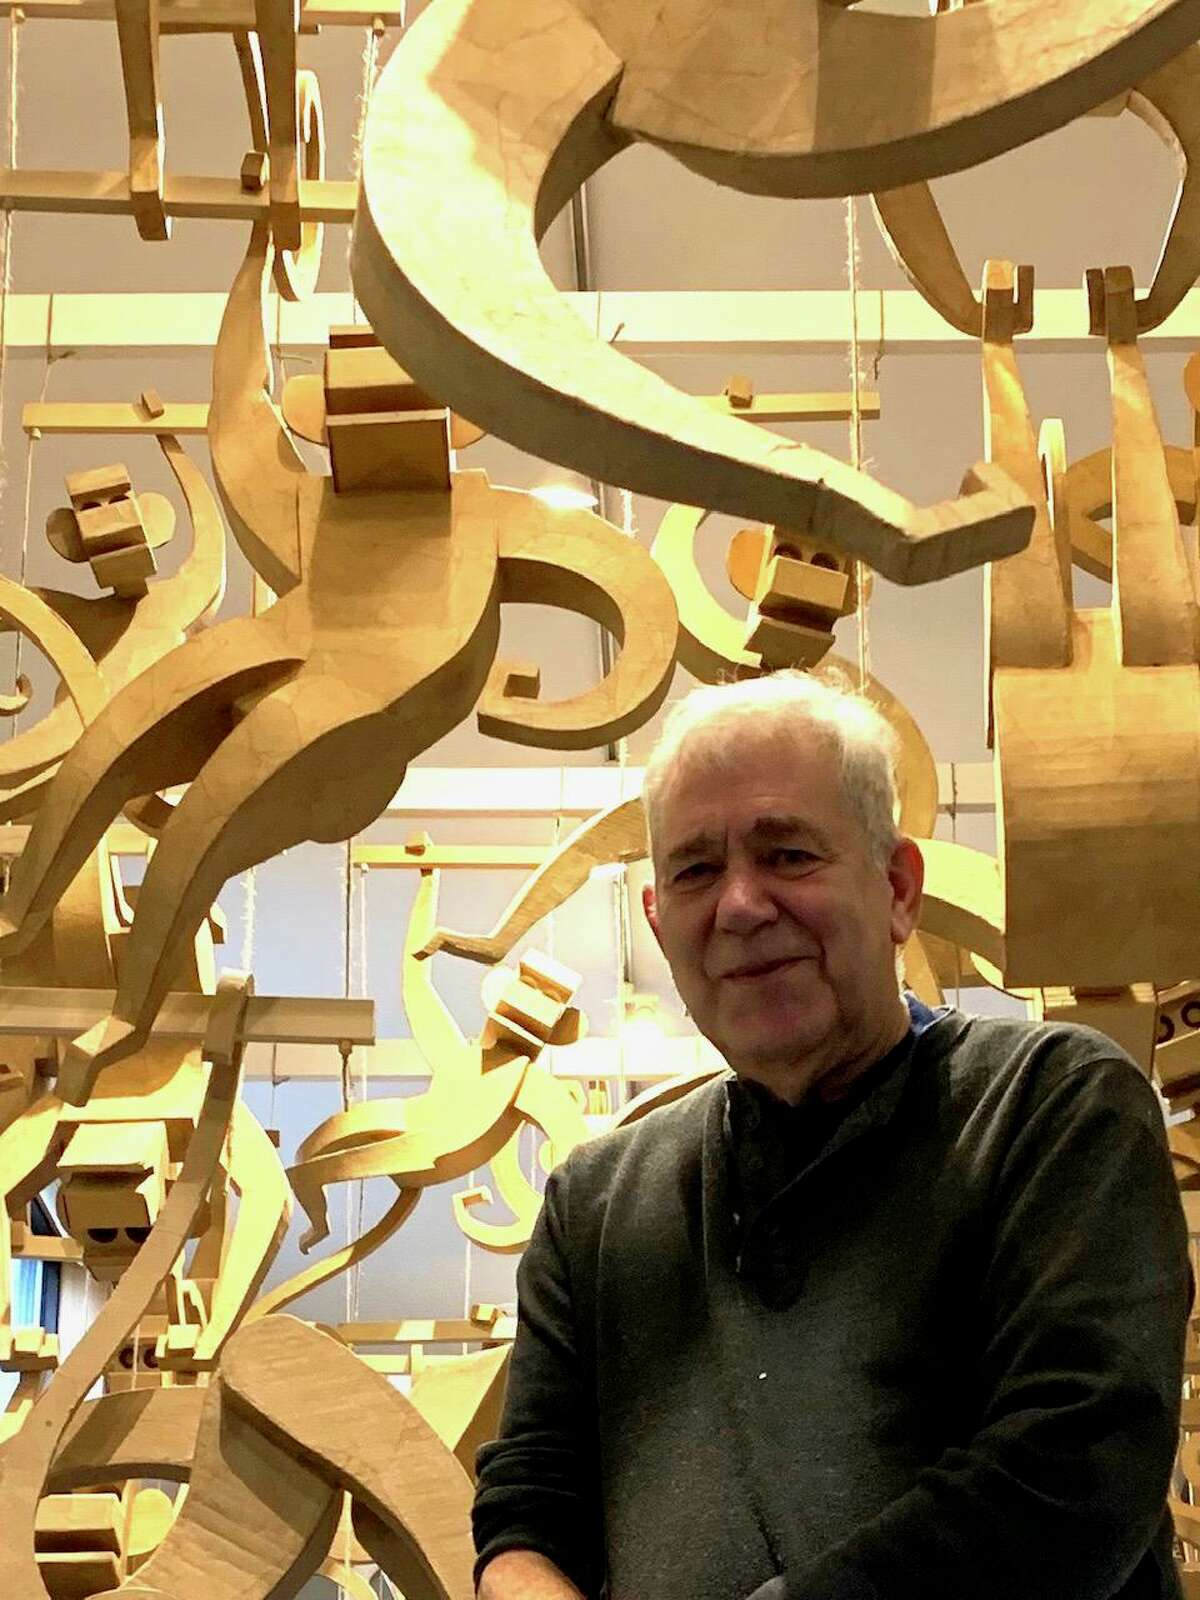 Sculptor and woodcut artist James Grashow of Redding with his cardboard hanging monkeys installation.